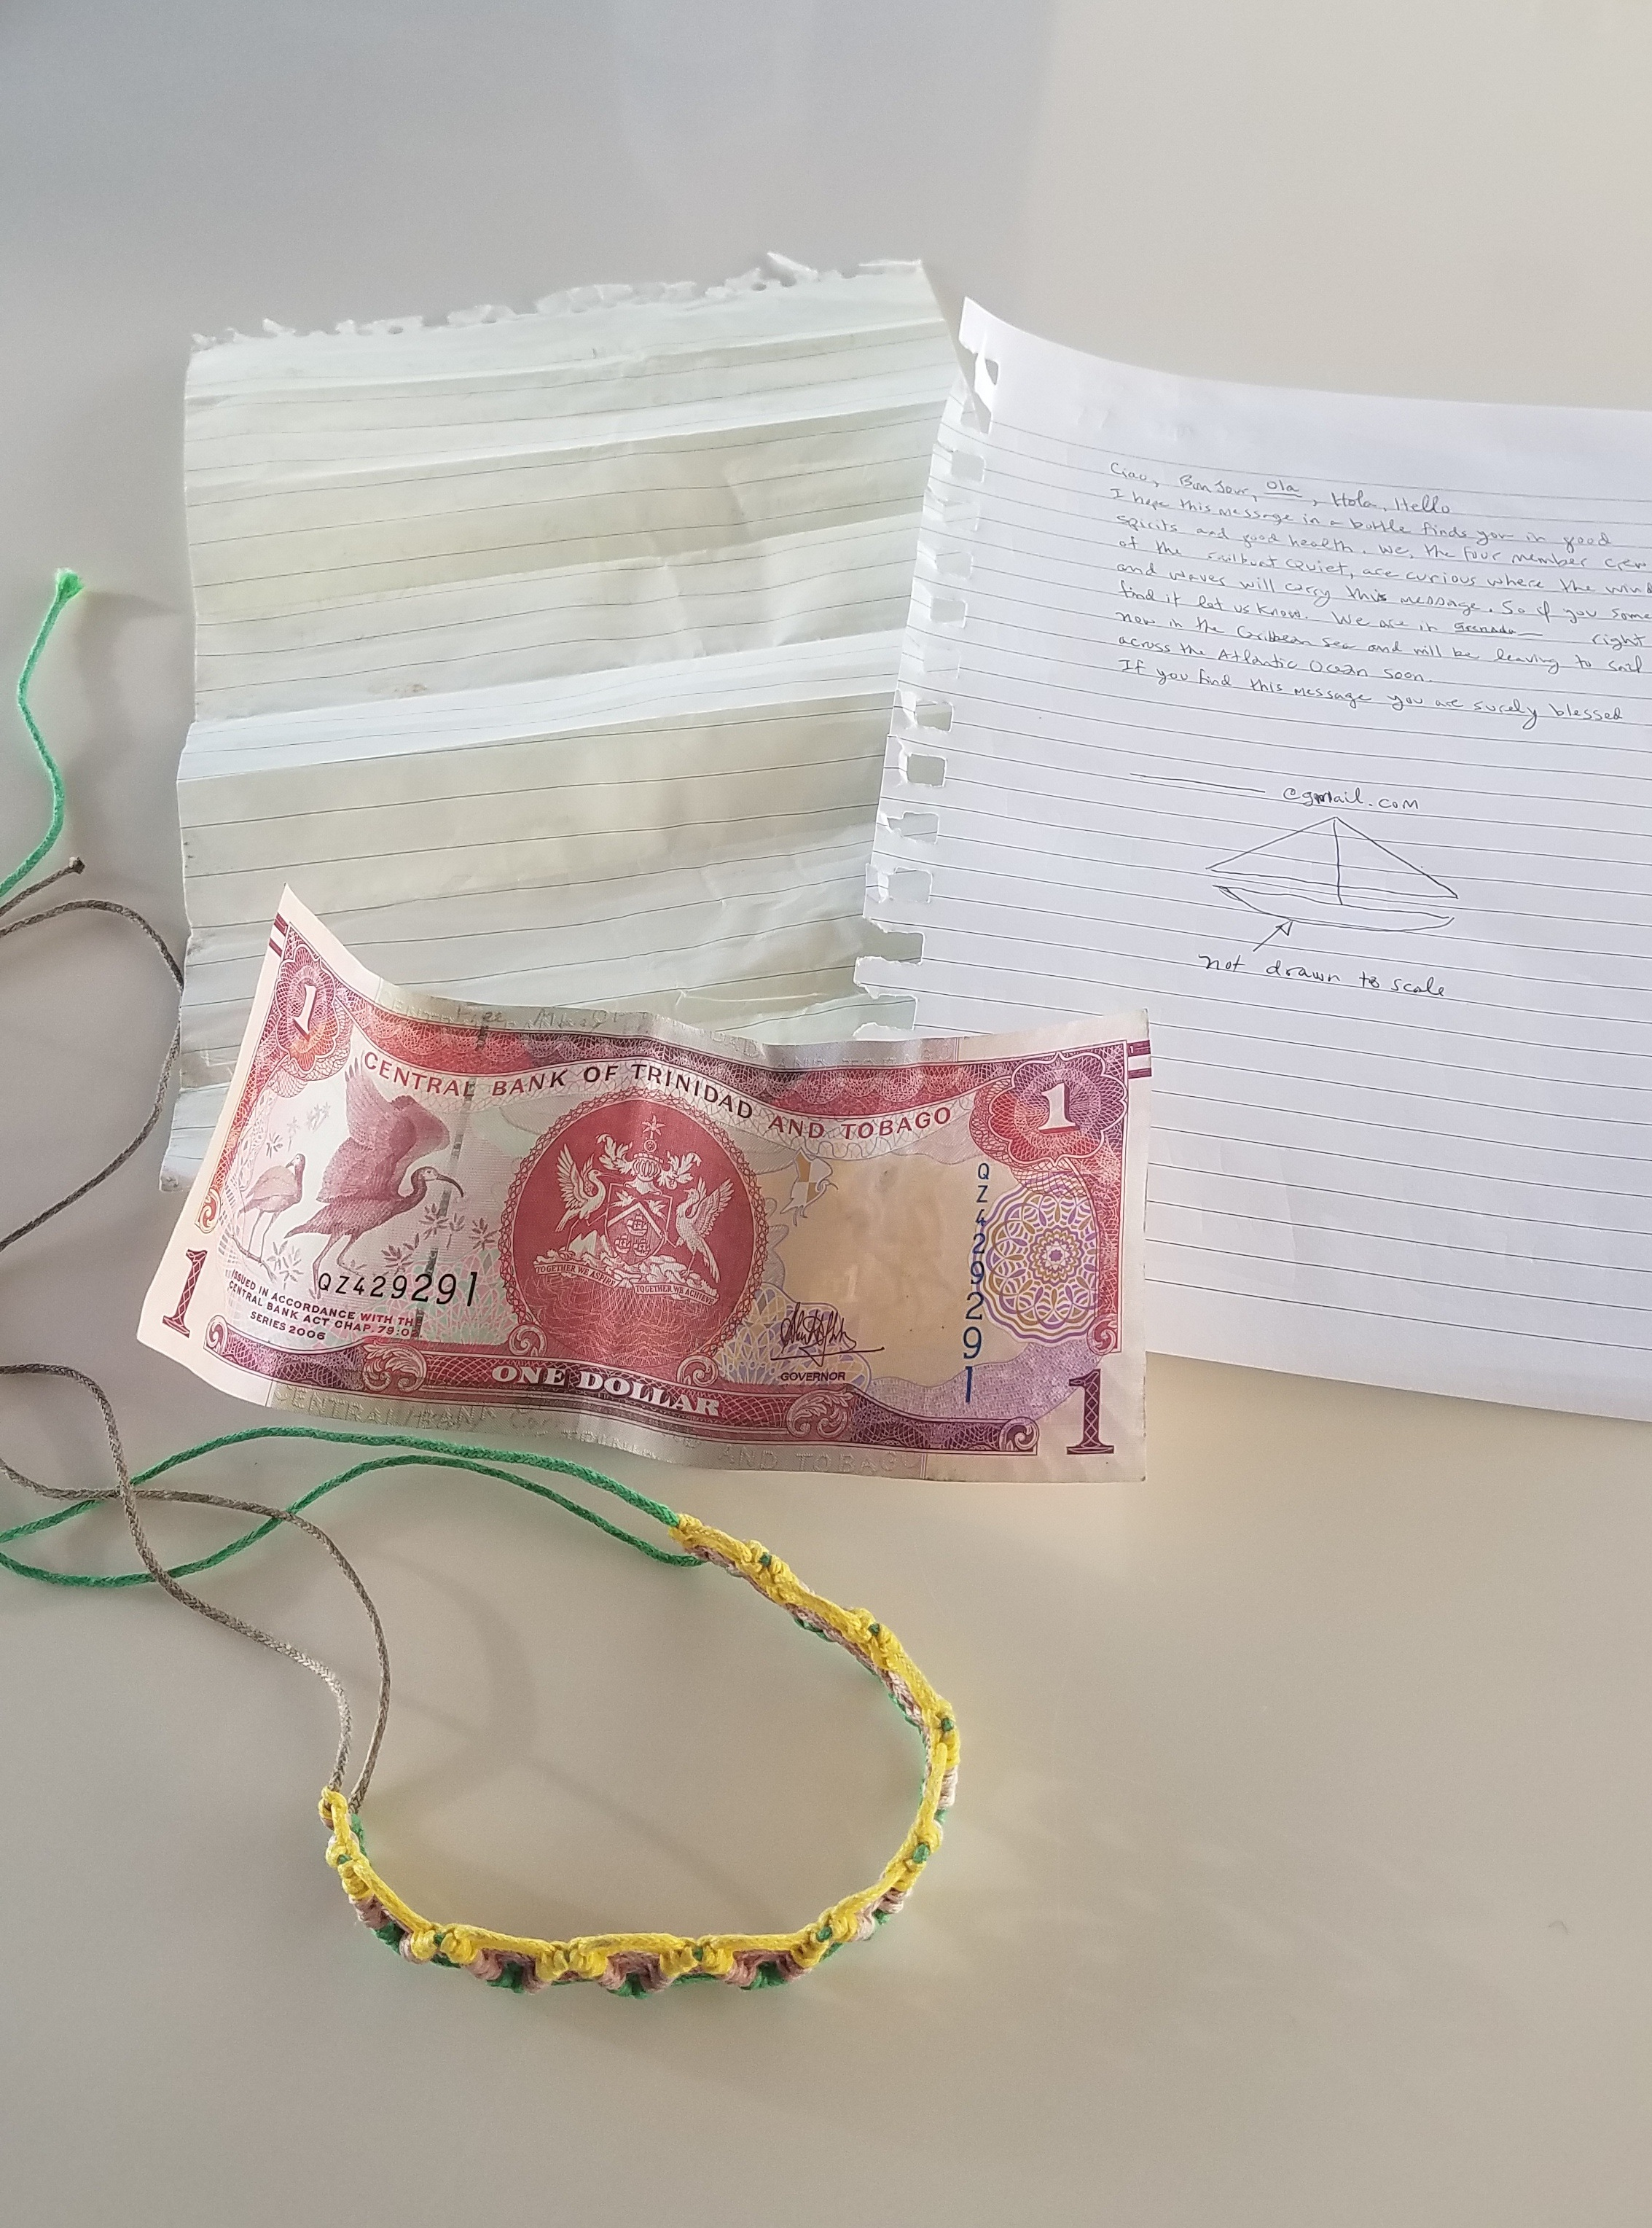 The contents of the bottle; the original faded note, the reconstructed version of the note, the dollar from Trinidad & Tobago and the bracelet